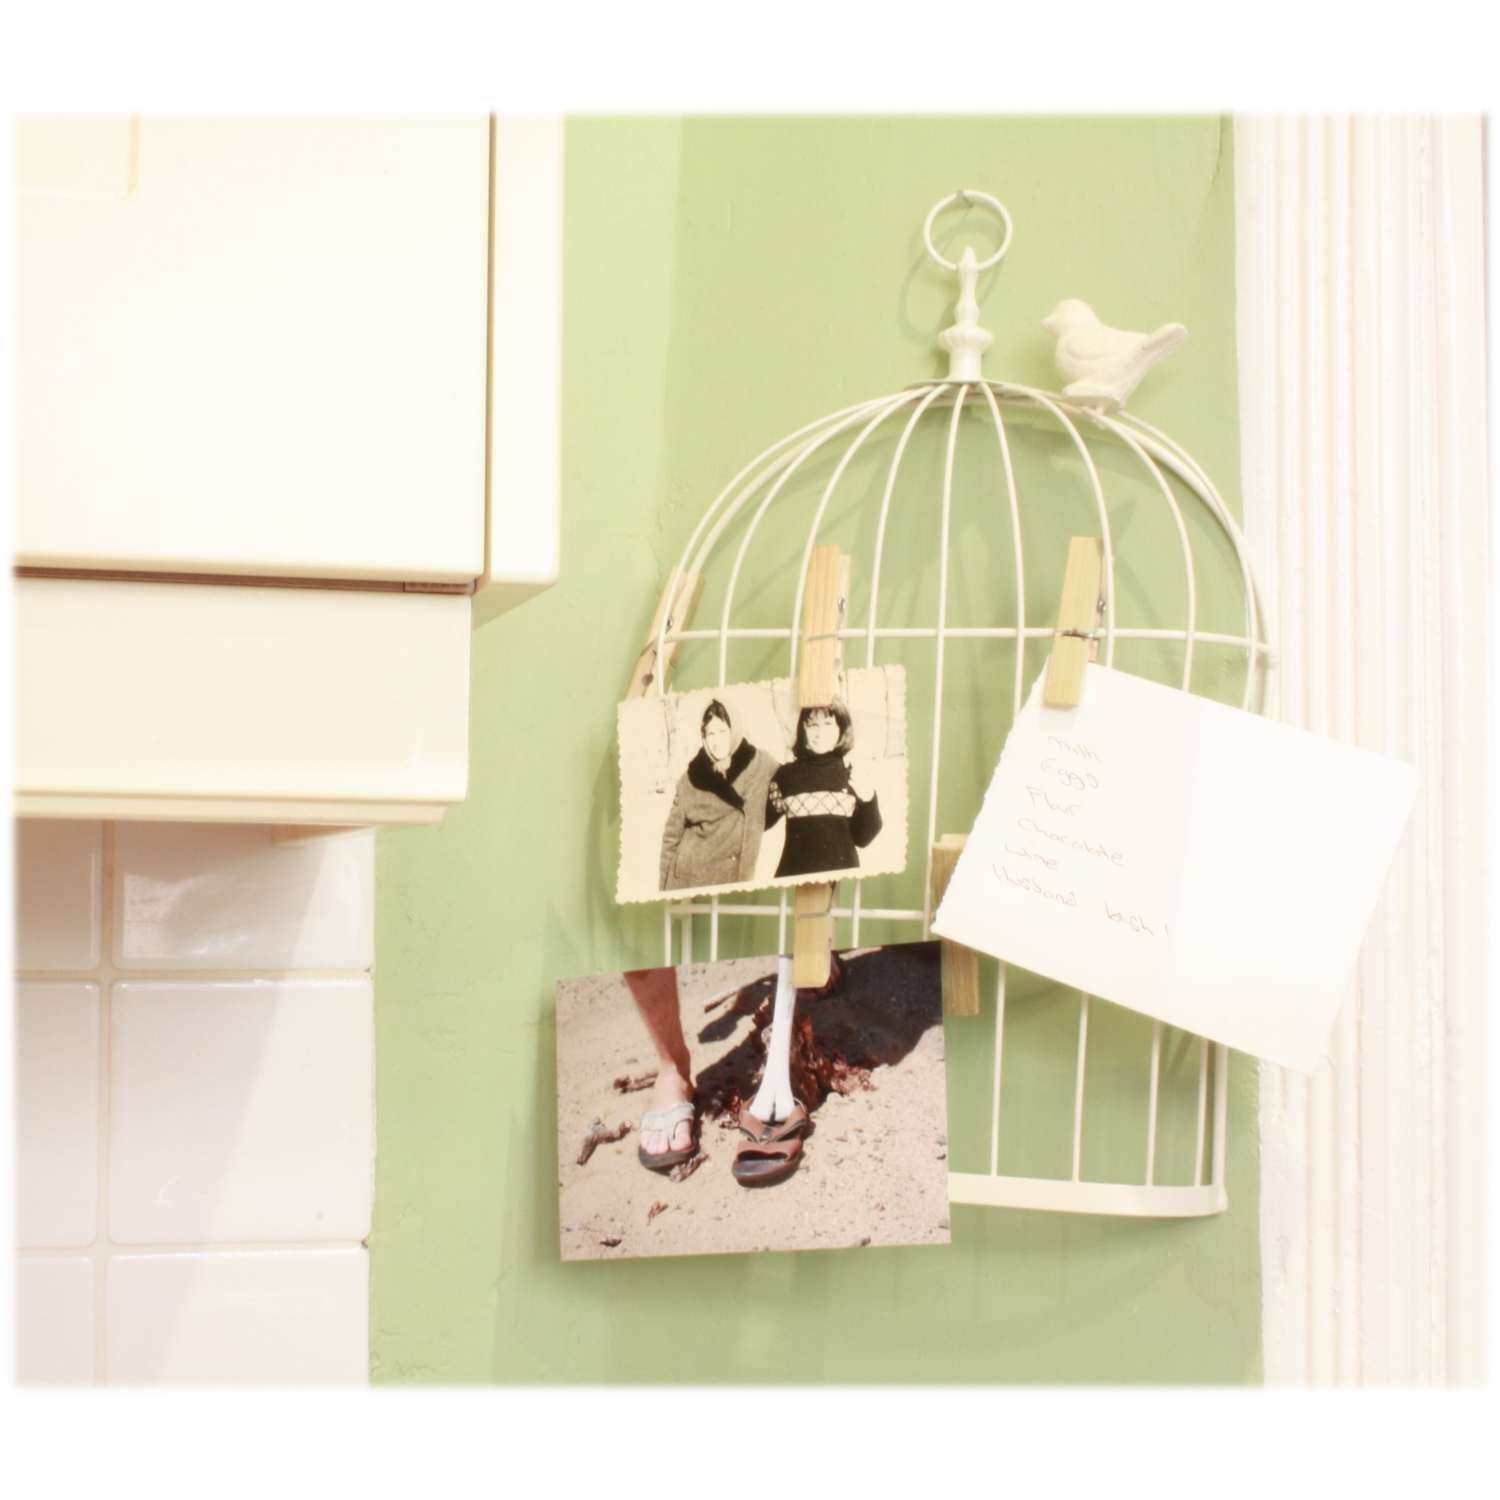 Wall Mounted Bird Cage Design Memo Holder With 5 Clips